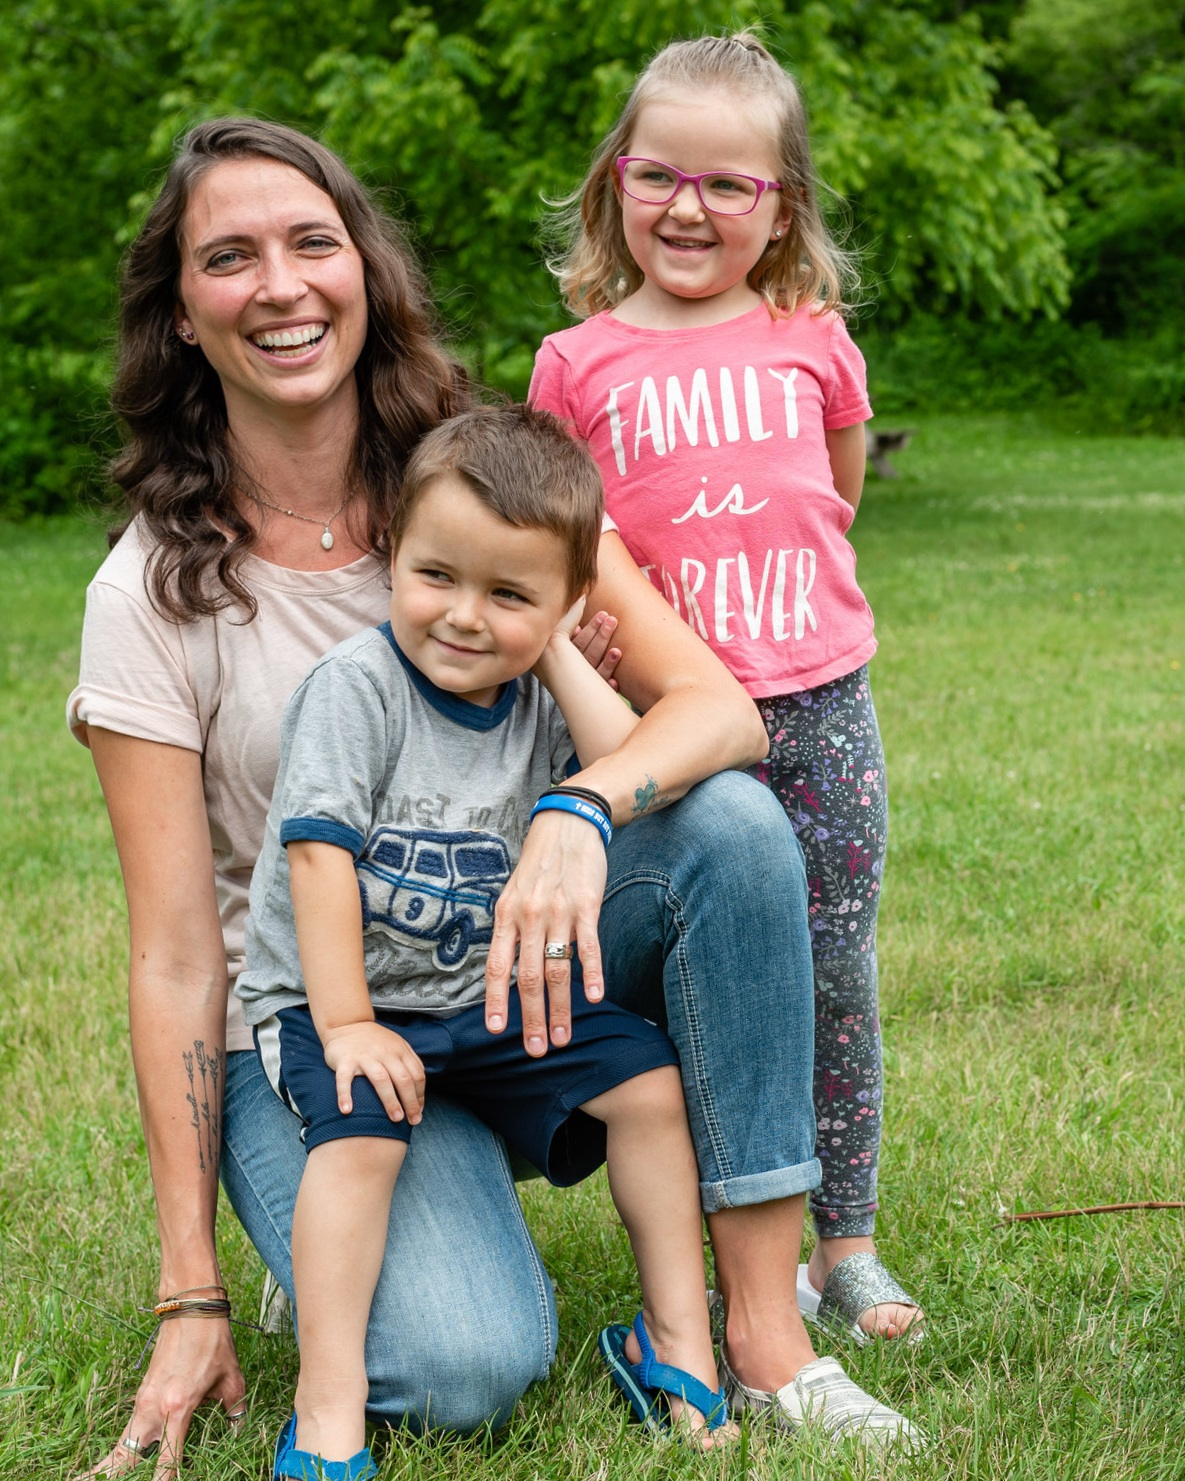 Our Mission - Childhood Cancer Community exists to provide meaningful connections for families affected by childhood cancer to promote positivity and purpose throughout their journeys. Compassion builds our connections, and by making our presence known, we raise awareness and funding to find a cure.Learn More